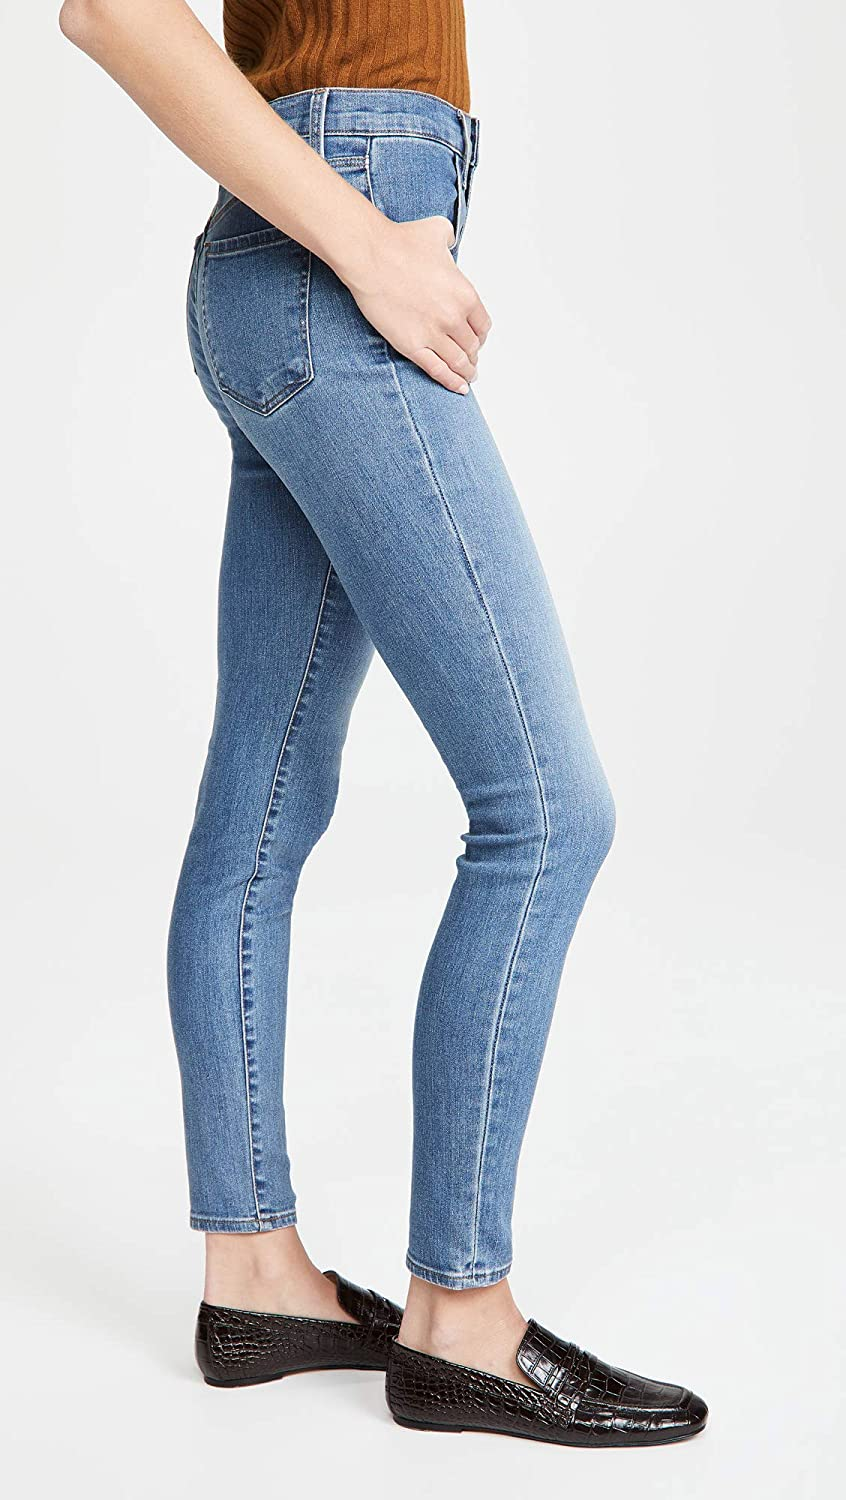 """Wax Jean Skinny Push-Up /""""Butt I Love You/"""" High Rise Stacked Waist Band Jeans"""